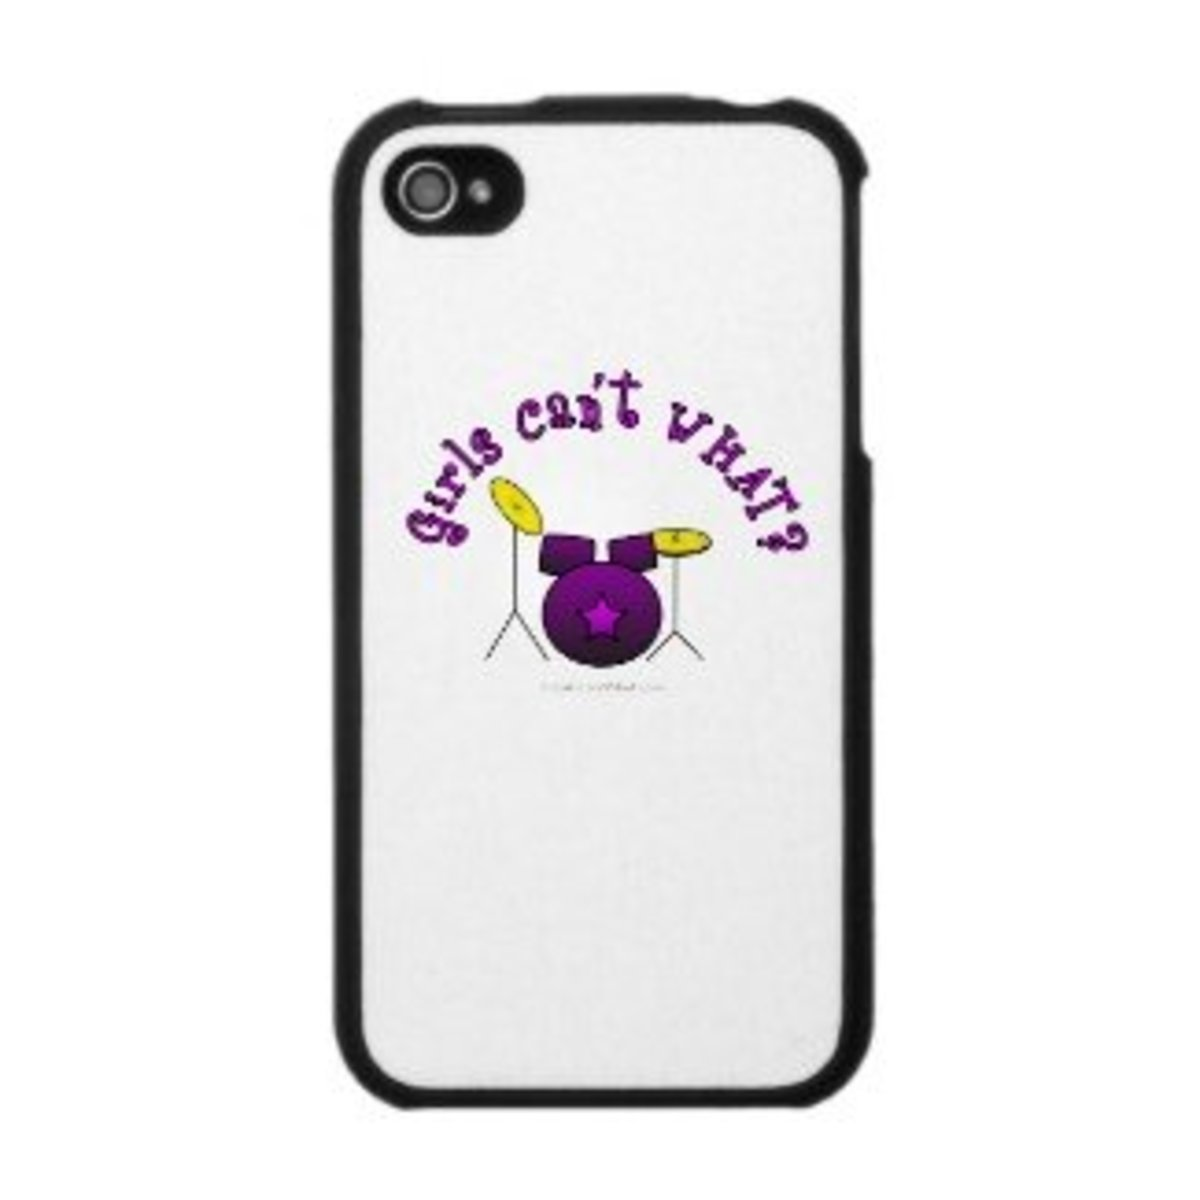 Case for iPhone 4/4S $44.40